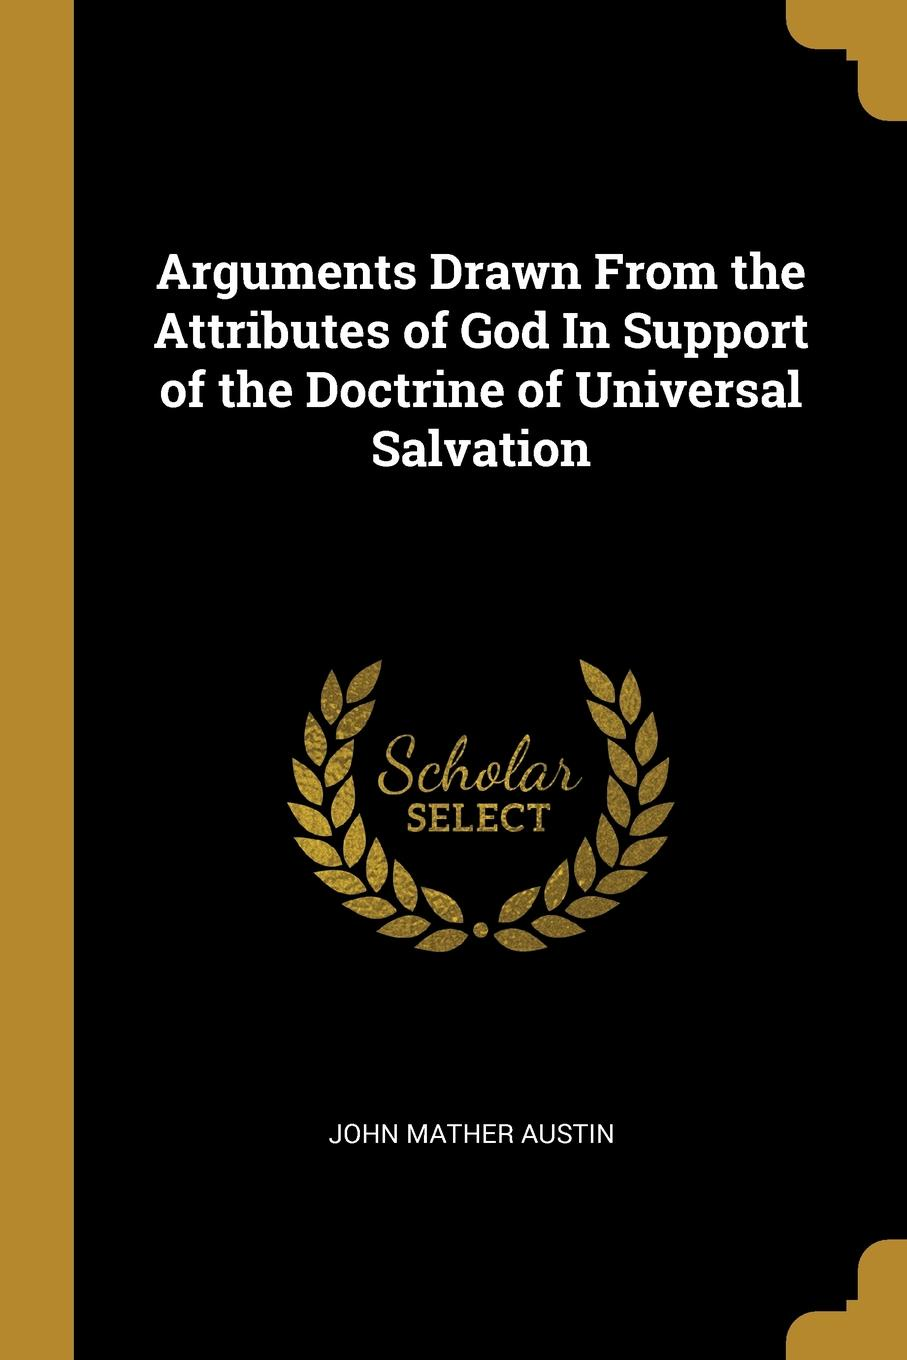 John Mather Austin. Arguments Drawn From the Attributes of God In Support of the Doctrine of Universal Salvation